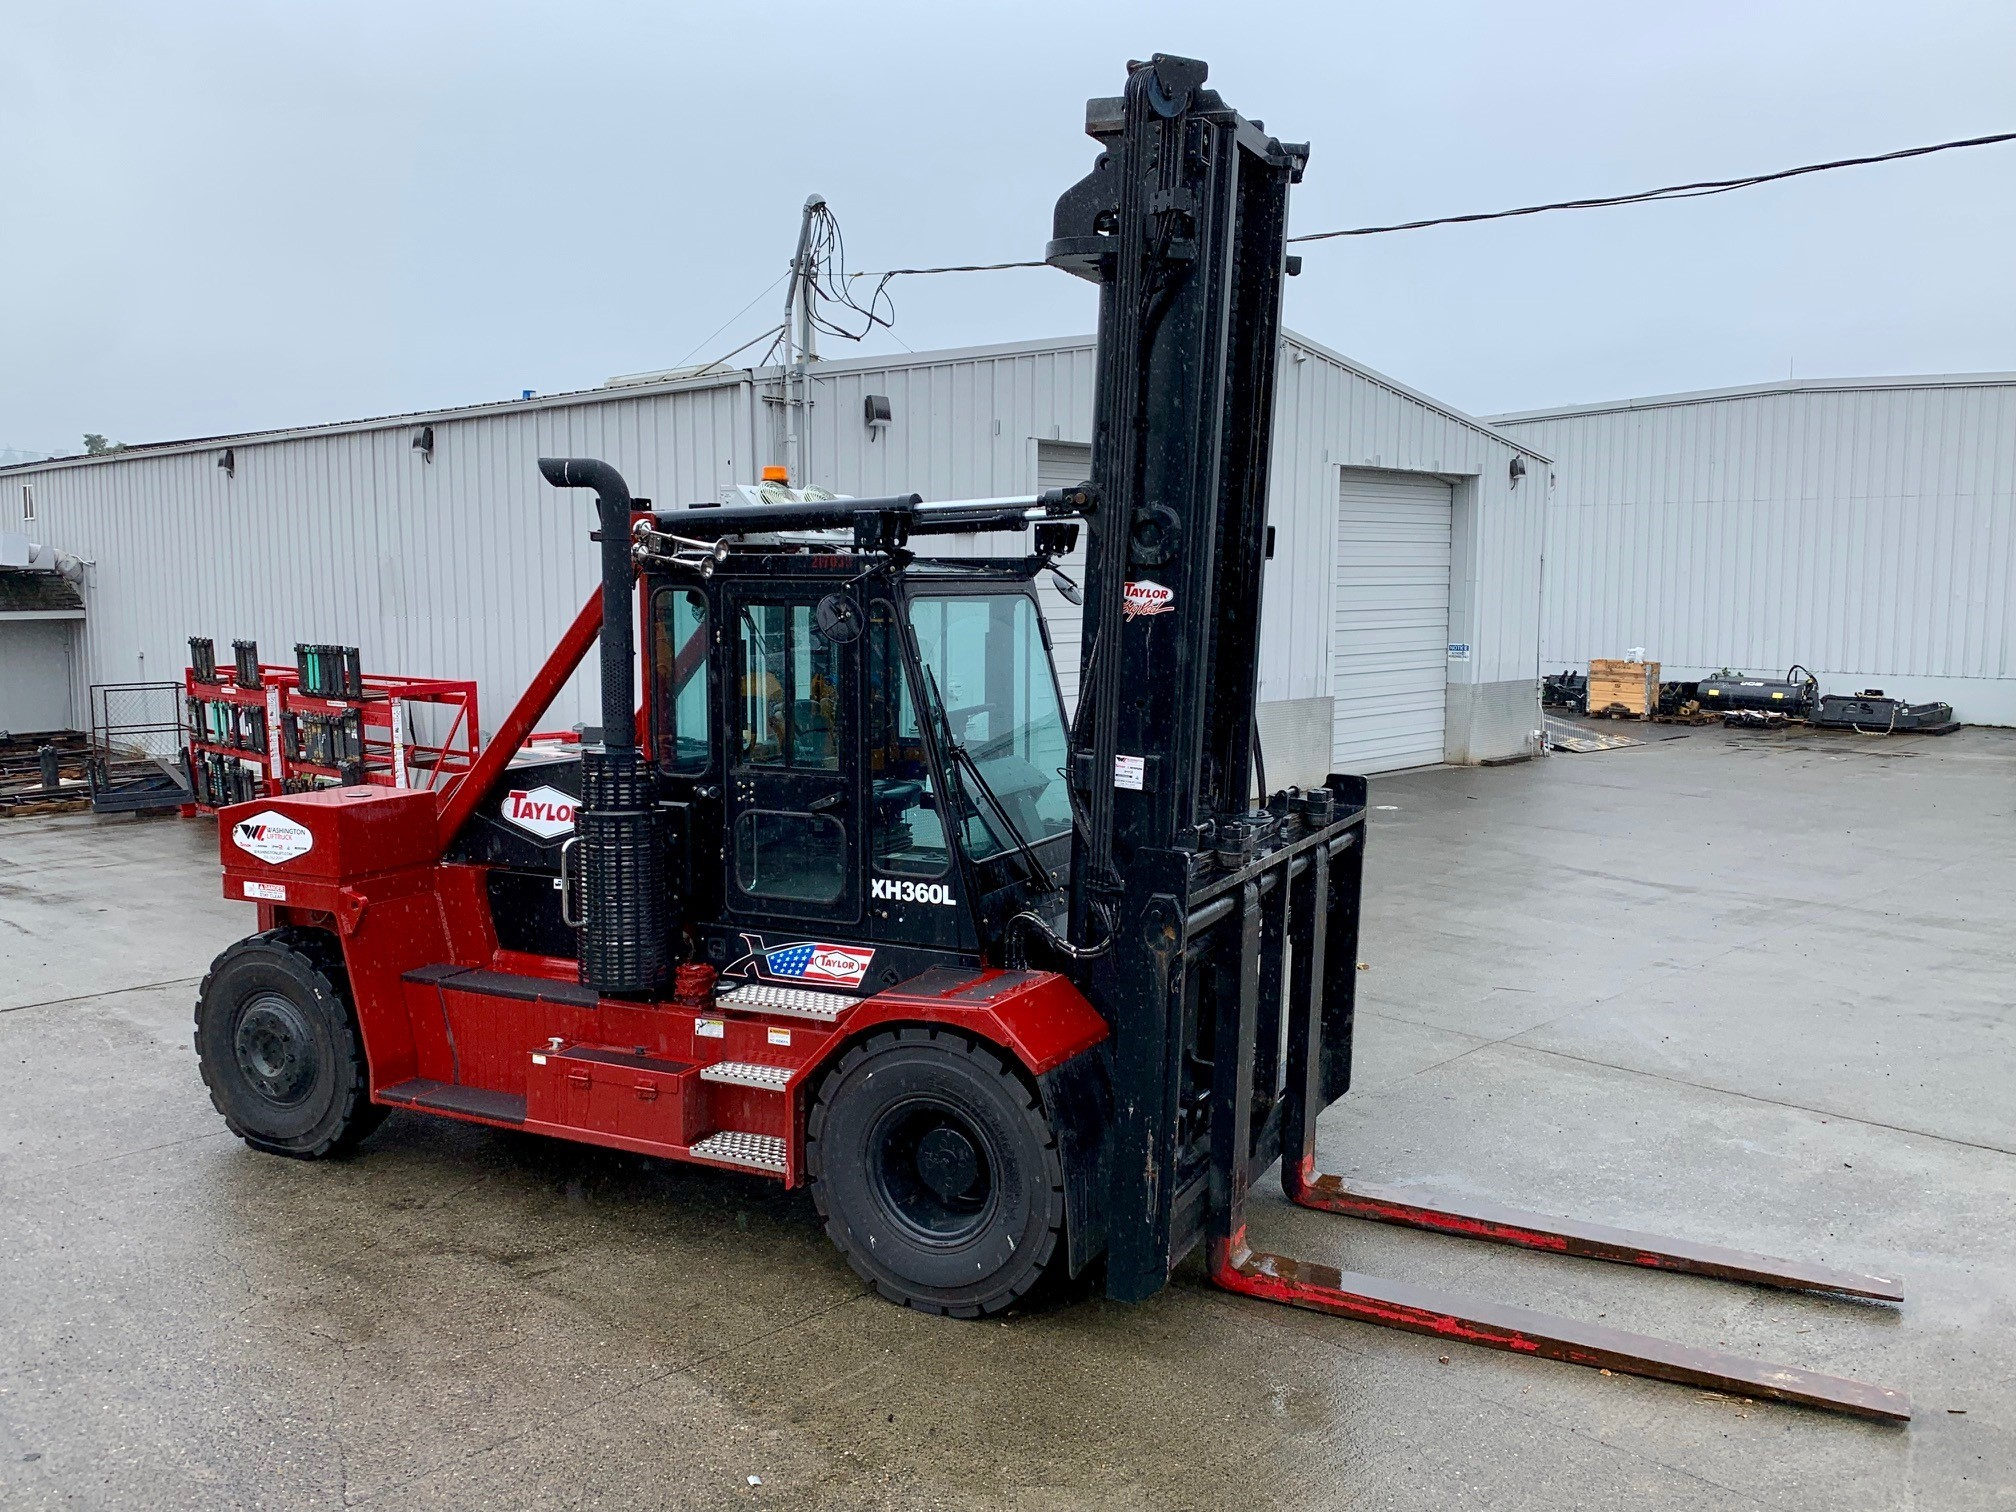 Washington Liftruck,a full line forklift and intermodal